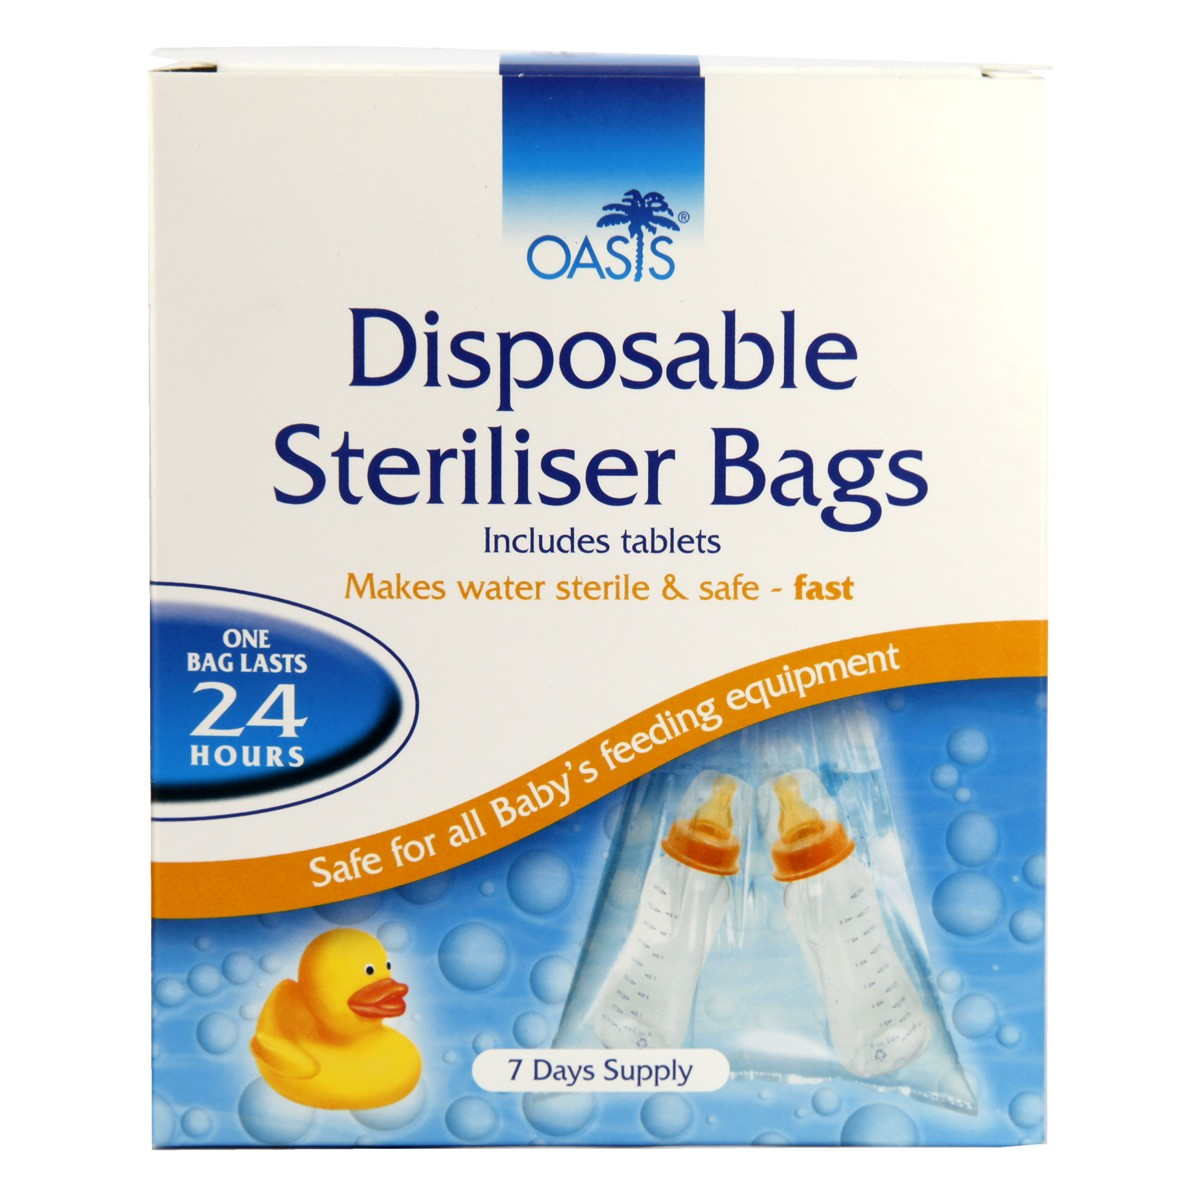 Oasis Disposable Steriliser Bags